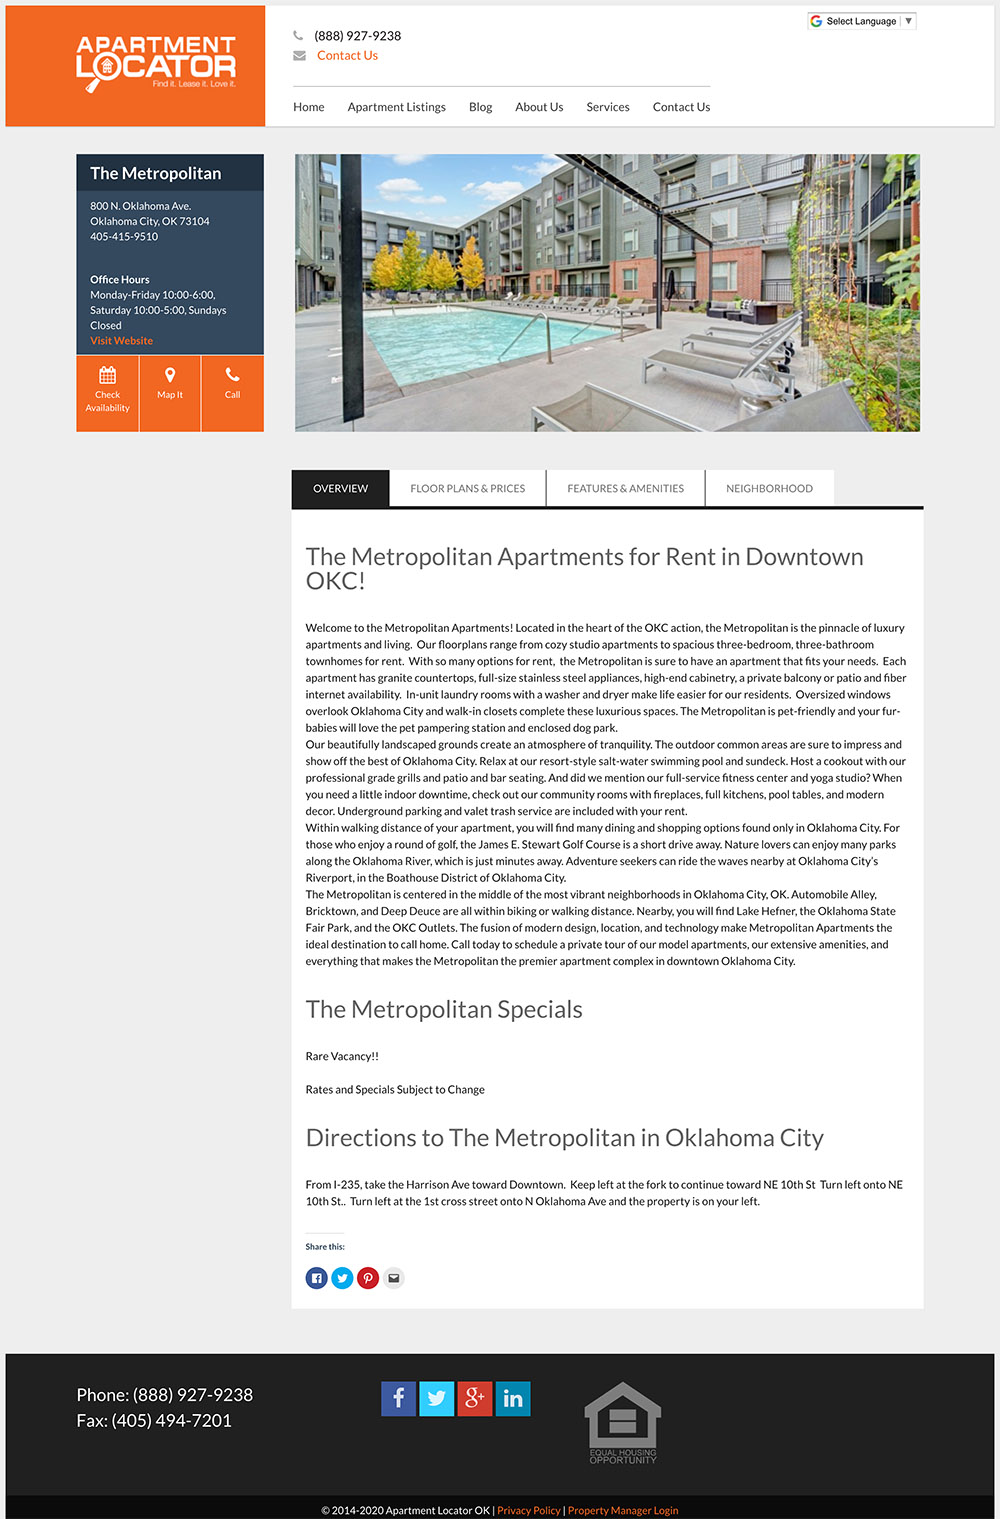 Landing page for the apartment detail page for an apartment locator company in oklahoma